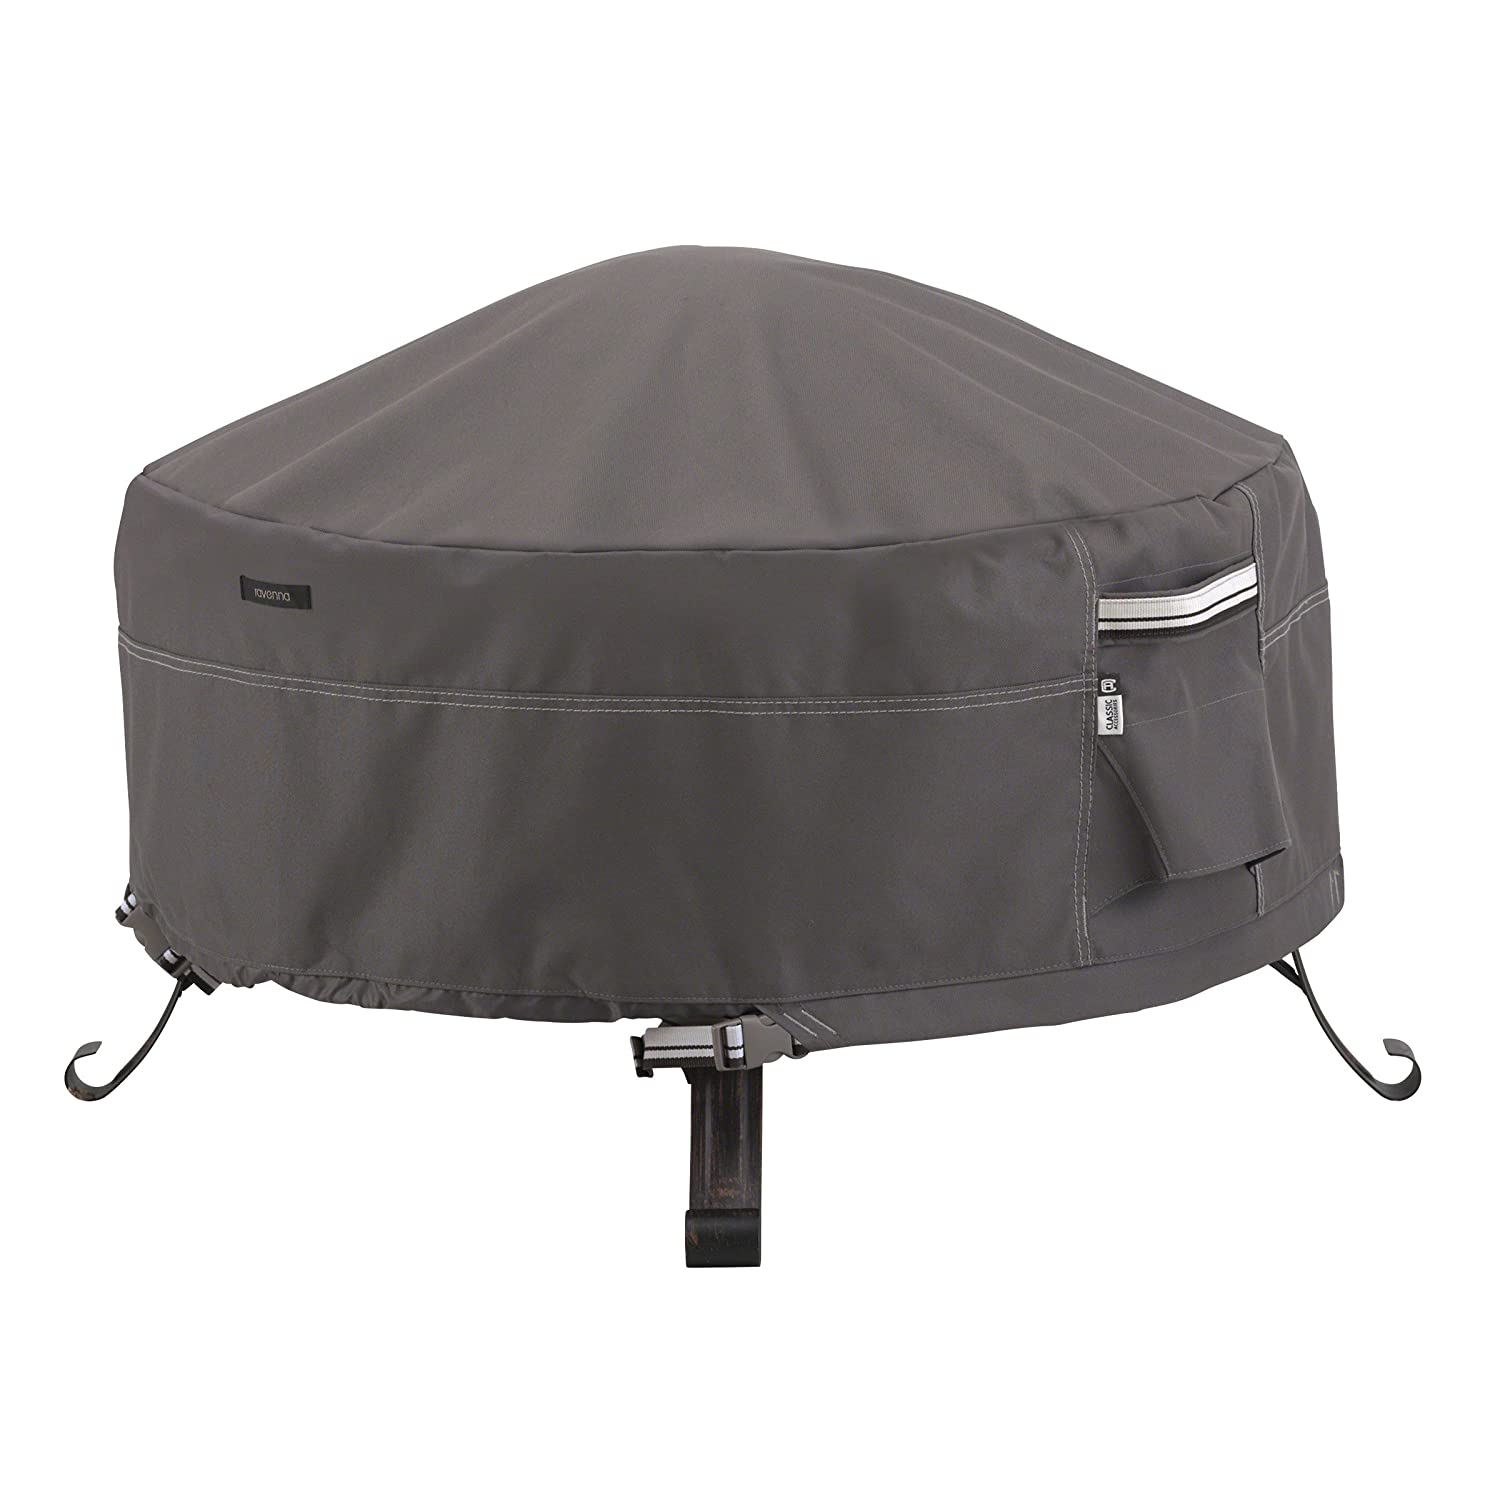 Classic Accessories 55-484-015101-EC Ravenna Full Coverage Round Fire Pit Premium Outdoor Cover with Durable and Water Resistant Fabric, Taupe, 30-Inch